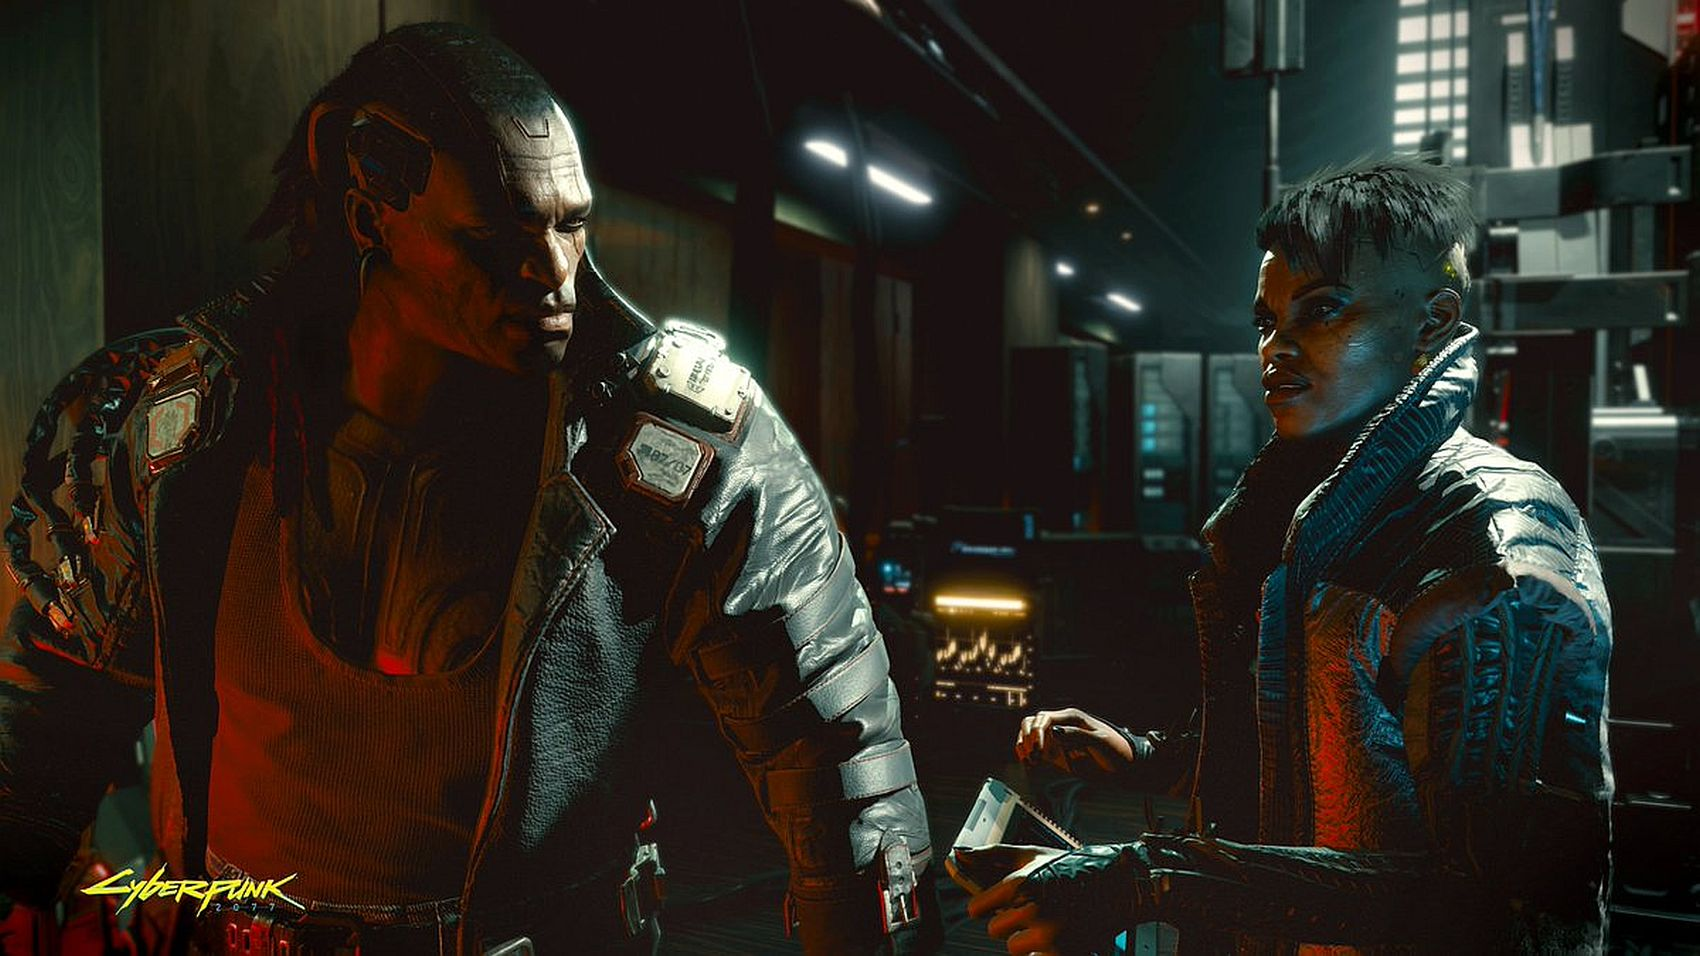 Cyberpunk 2077 Will Have Multiple Endings Like The Witcher 3